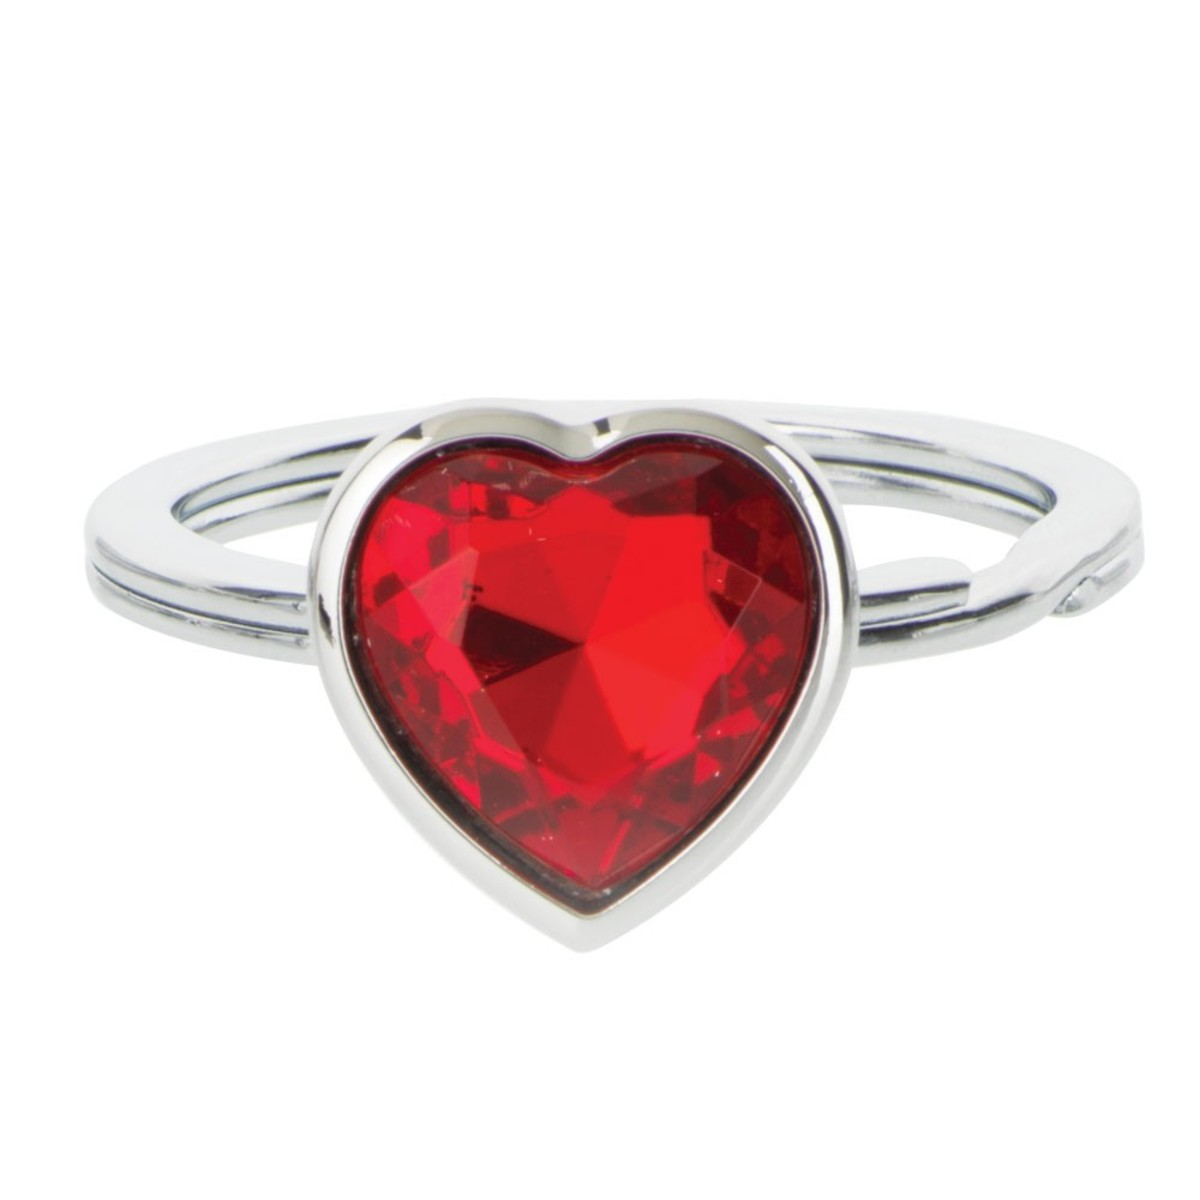 Red heart shaped finger ring pic